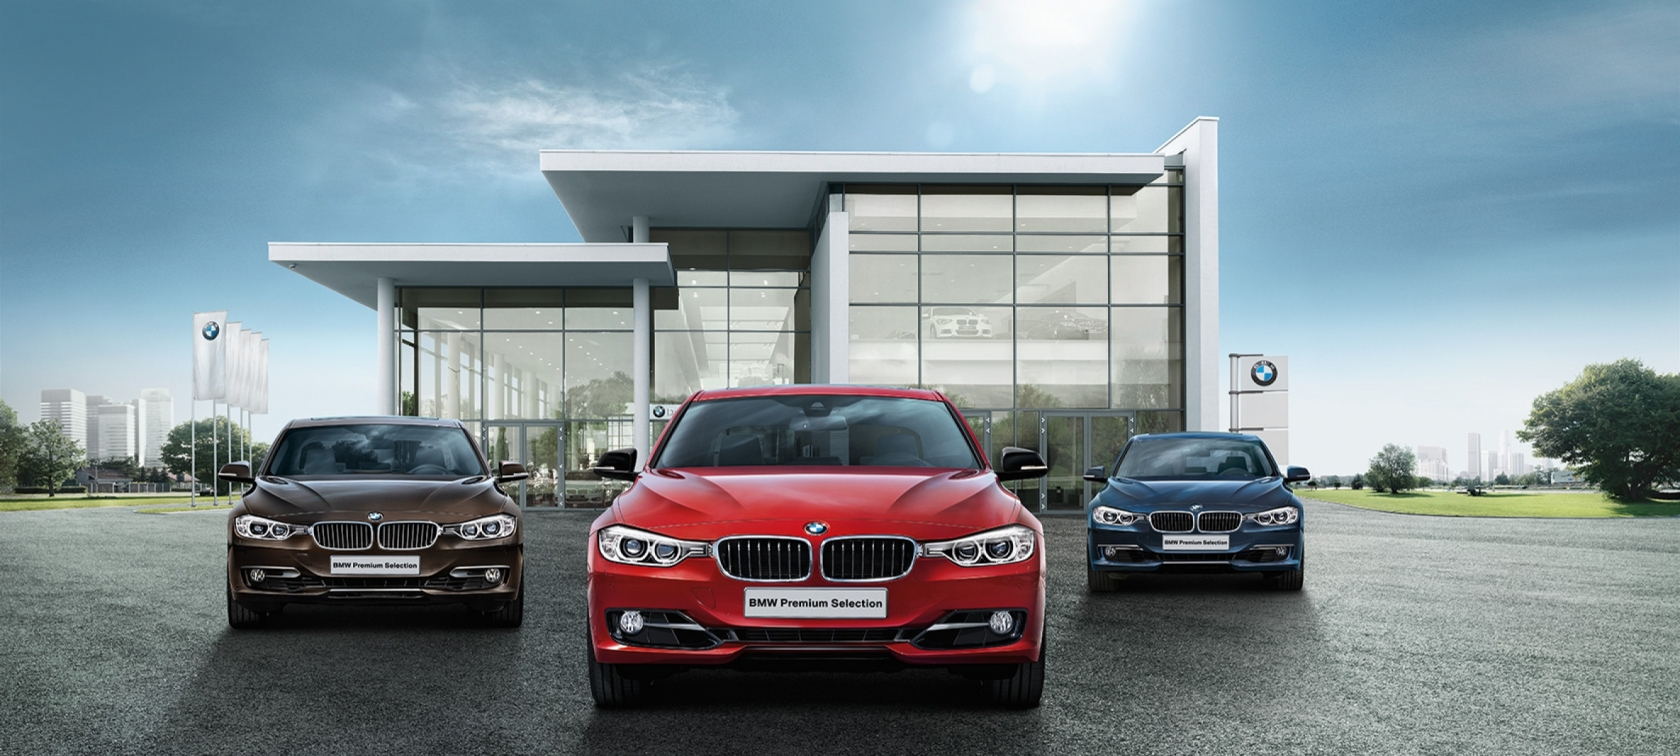 Occasionen garage hollenstein ag aesch for Garage bmw creteil